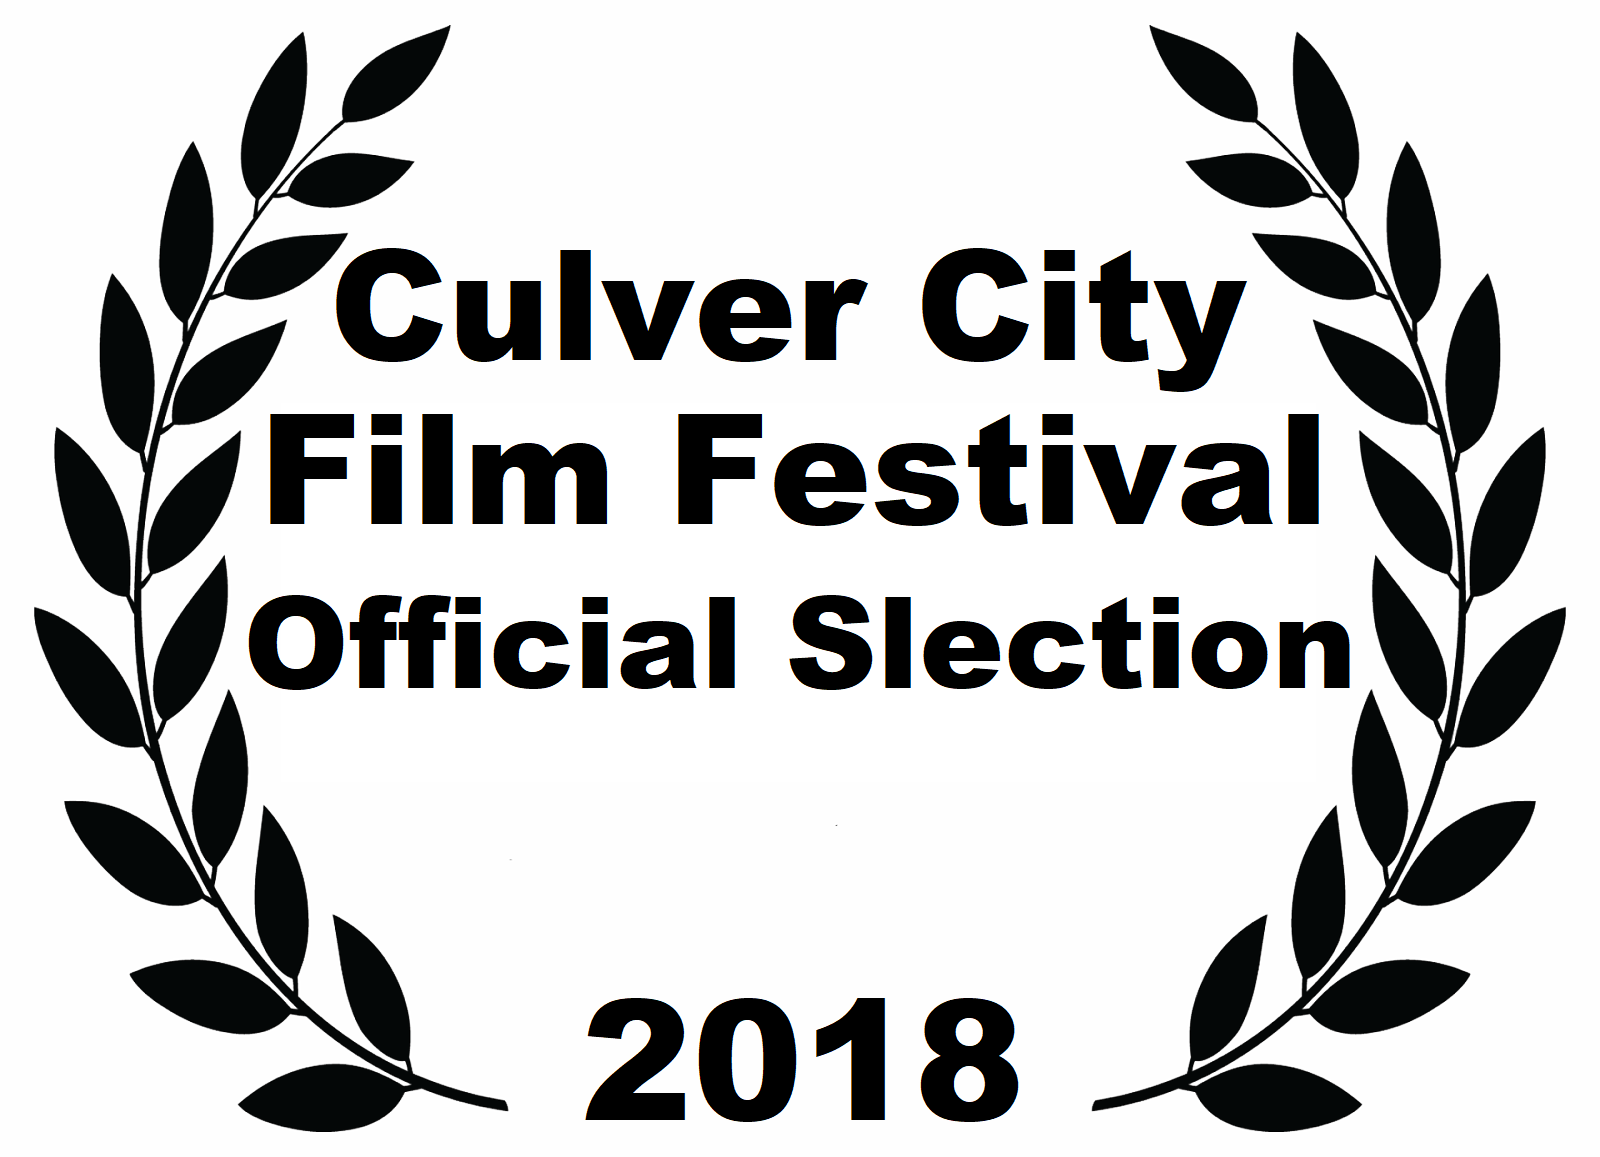 Culver City Film Festival Official Slection 2018.png